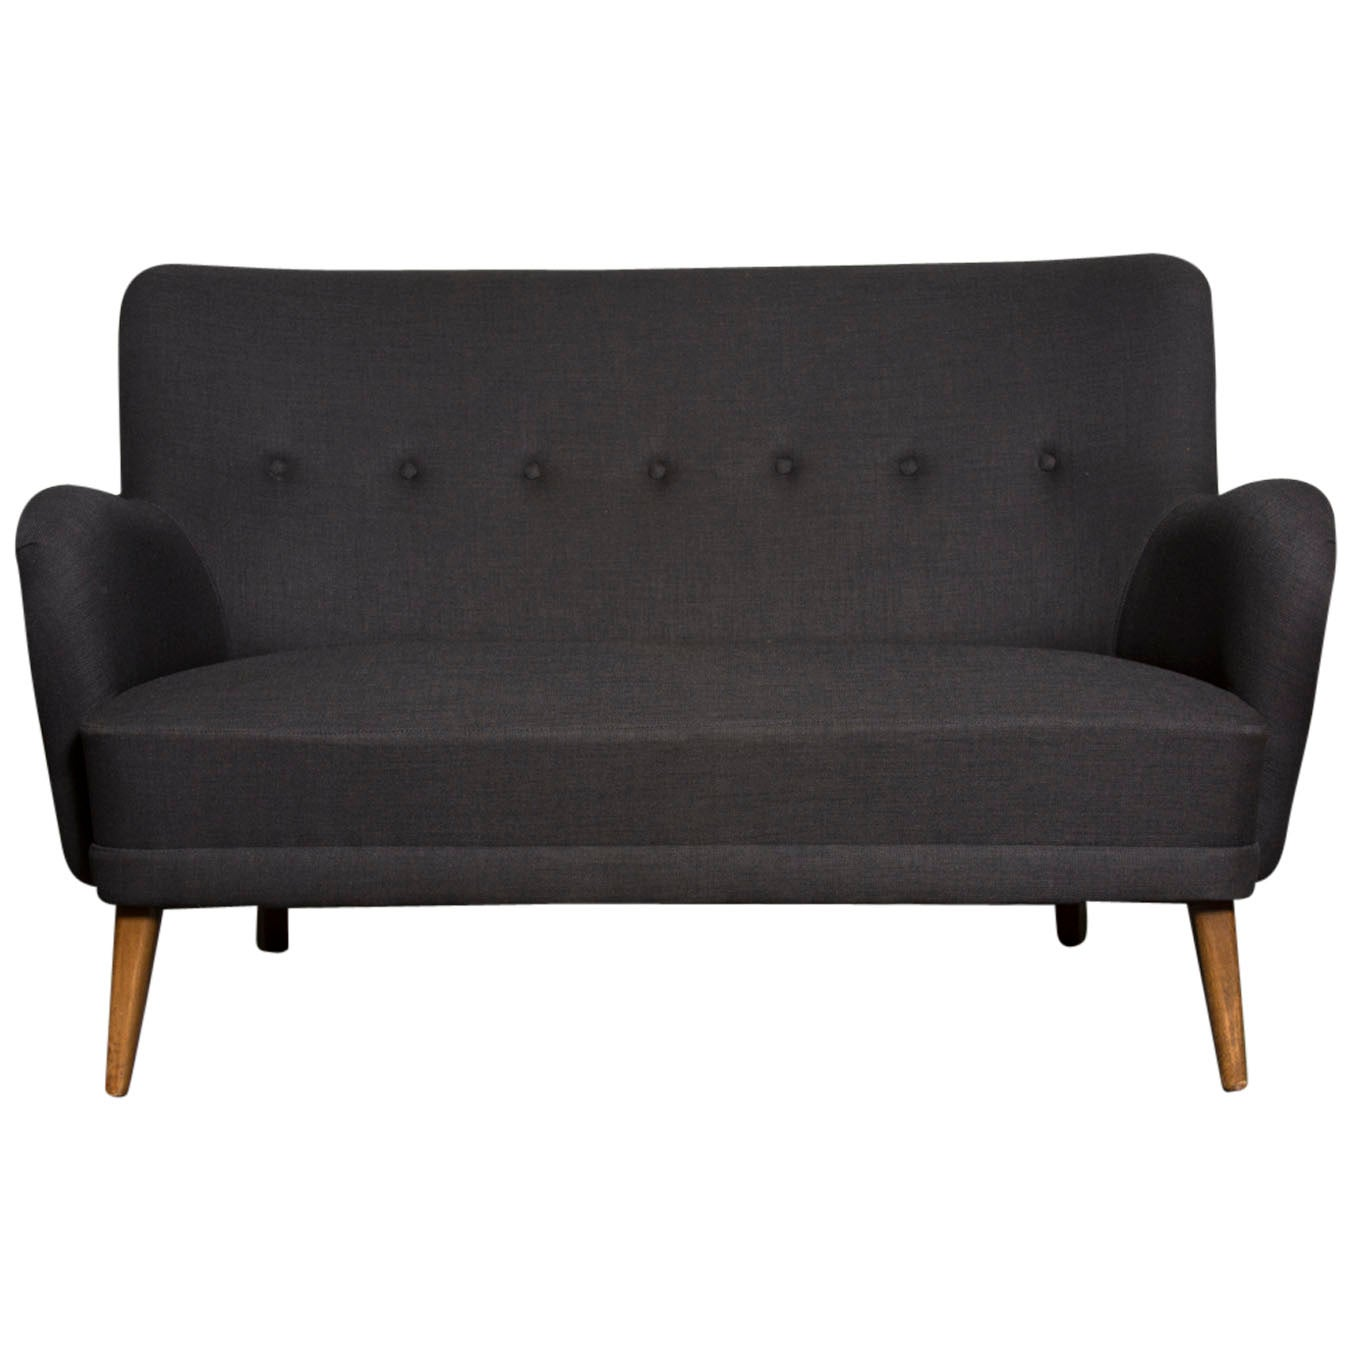 Theo Ruth Loveseat by Artifort